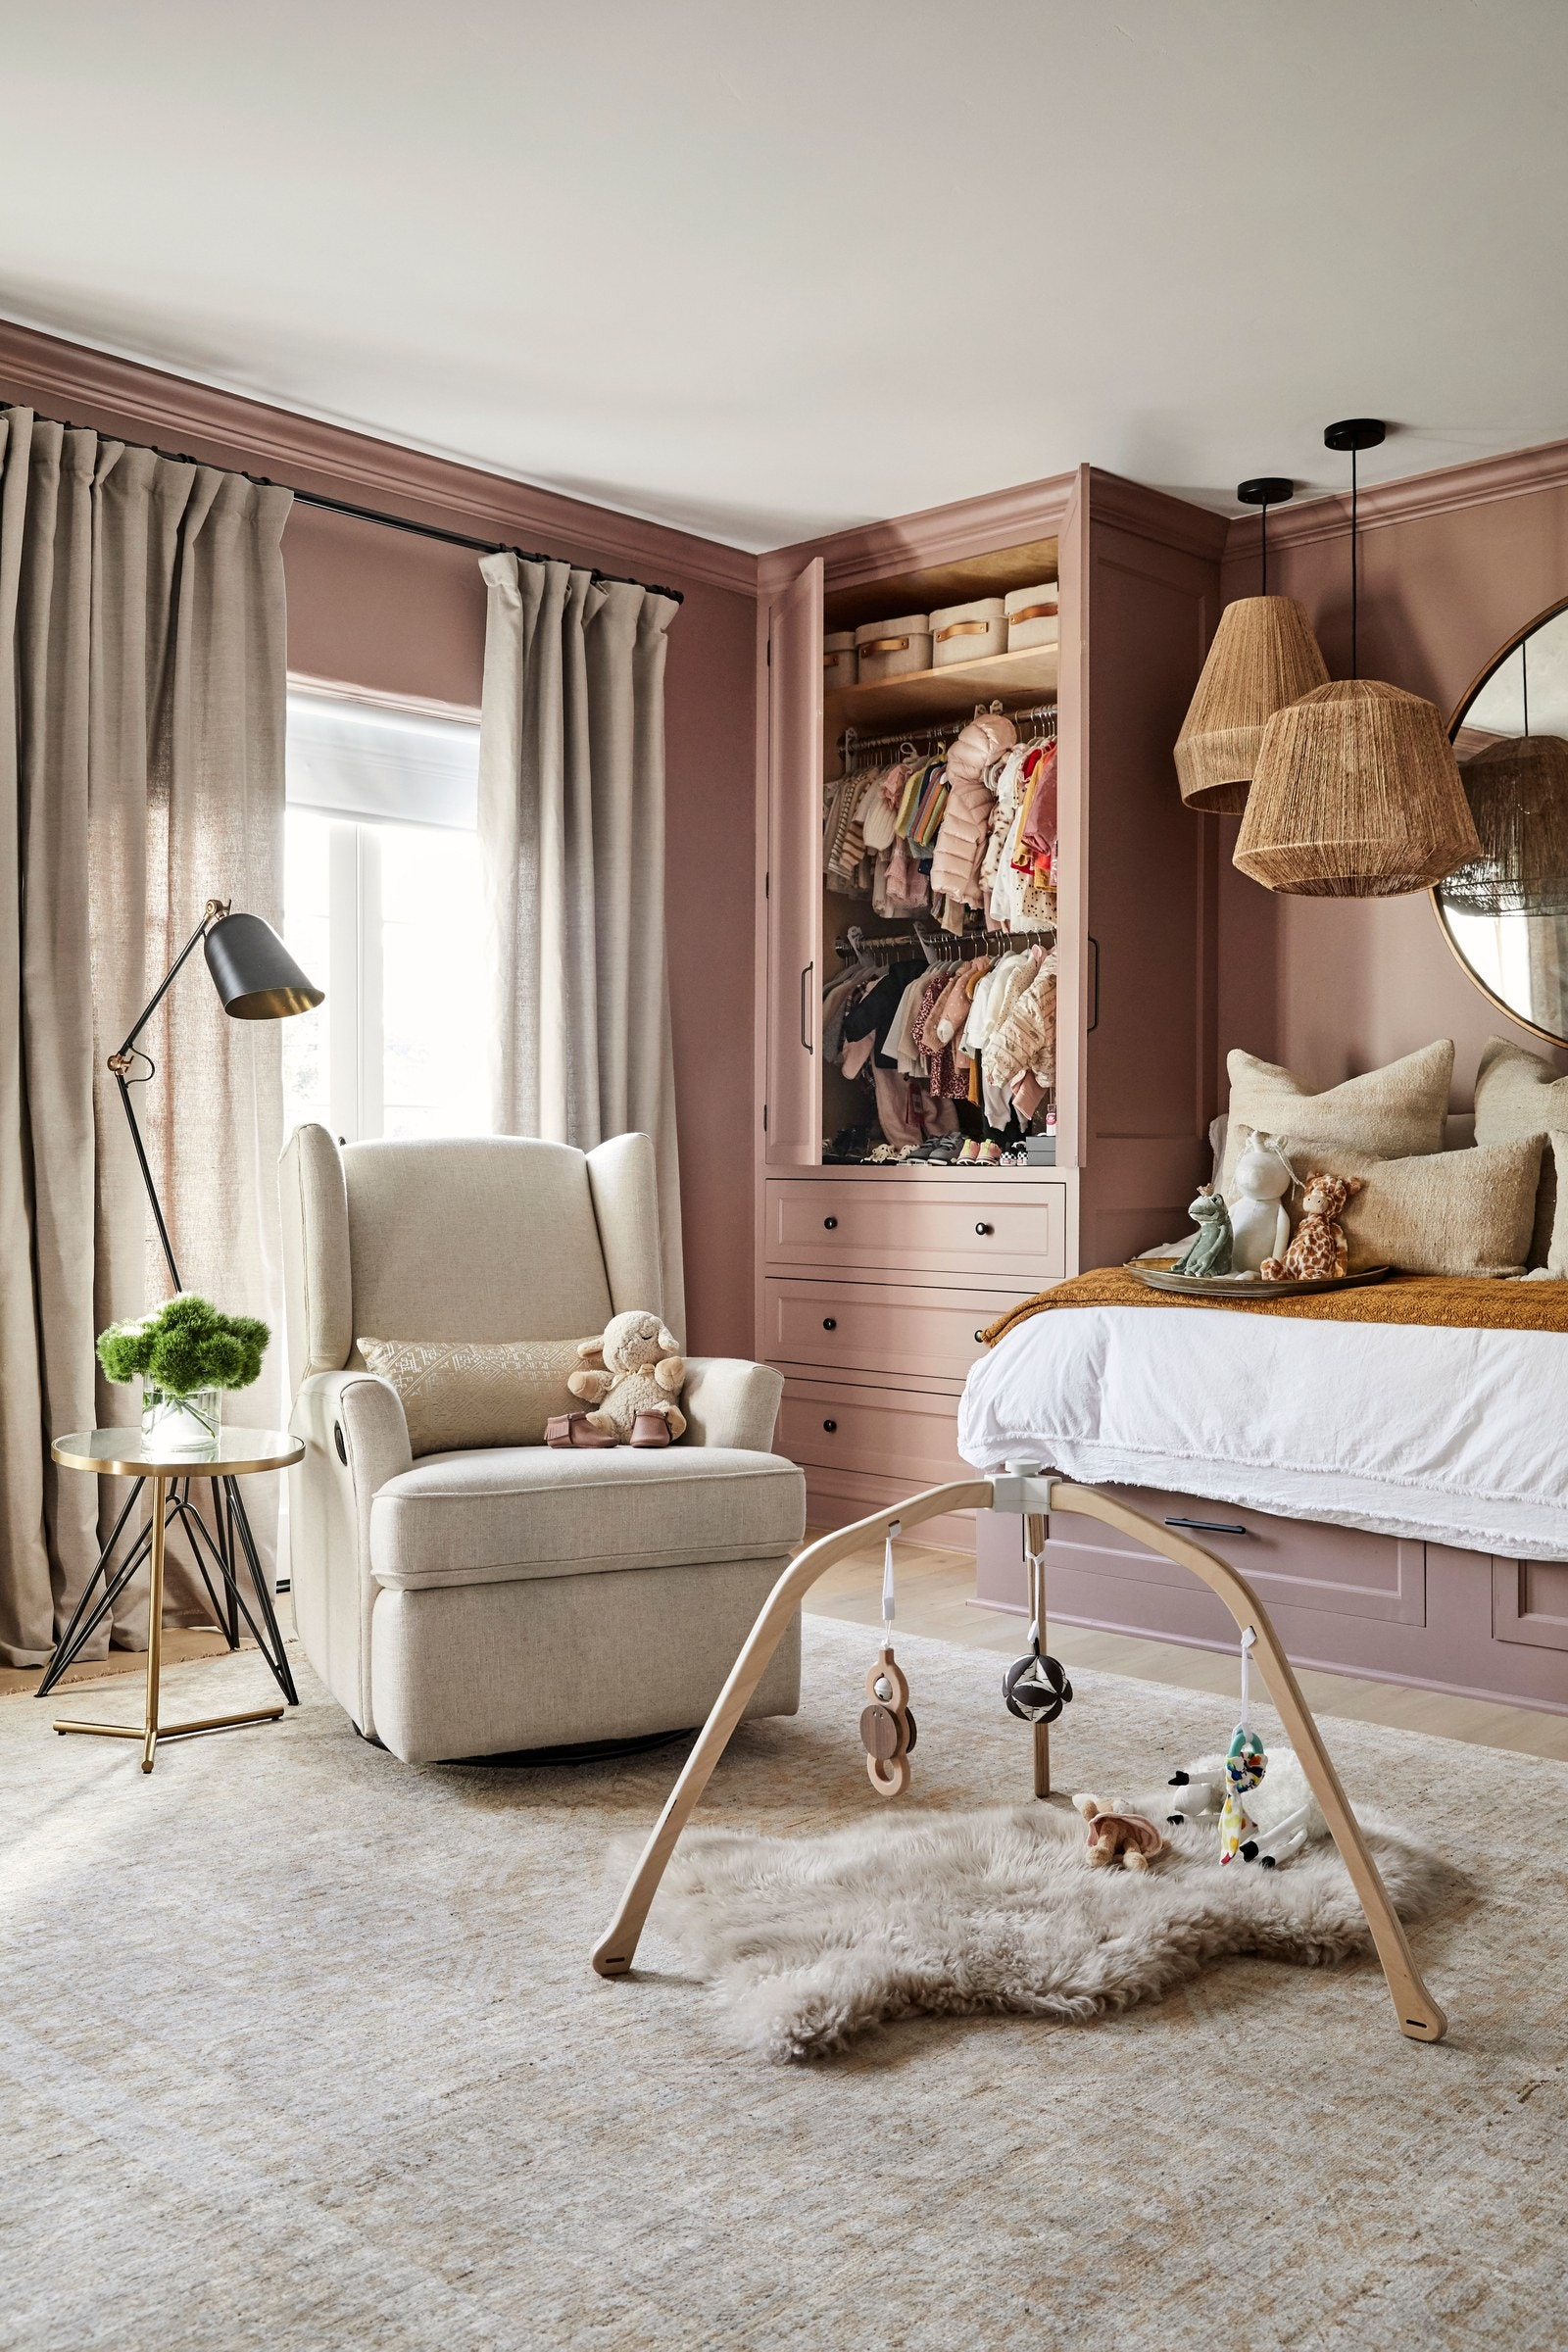 los angeles homes Los Angeles Homes: Meet Shay Mitchell's Redecorated Oasis 9